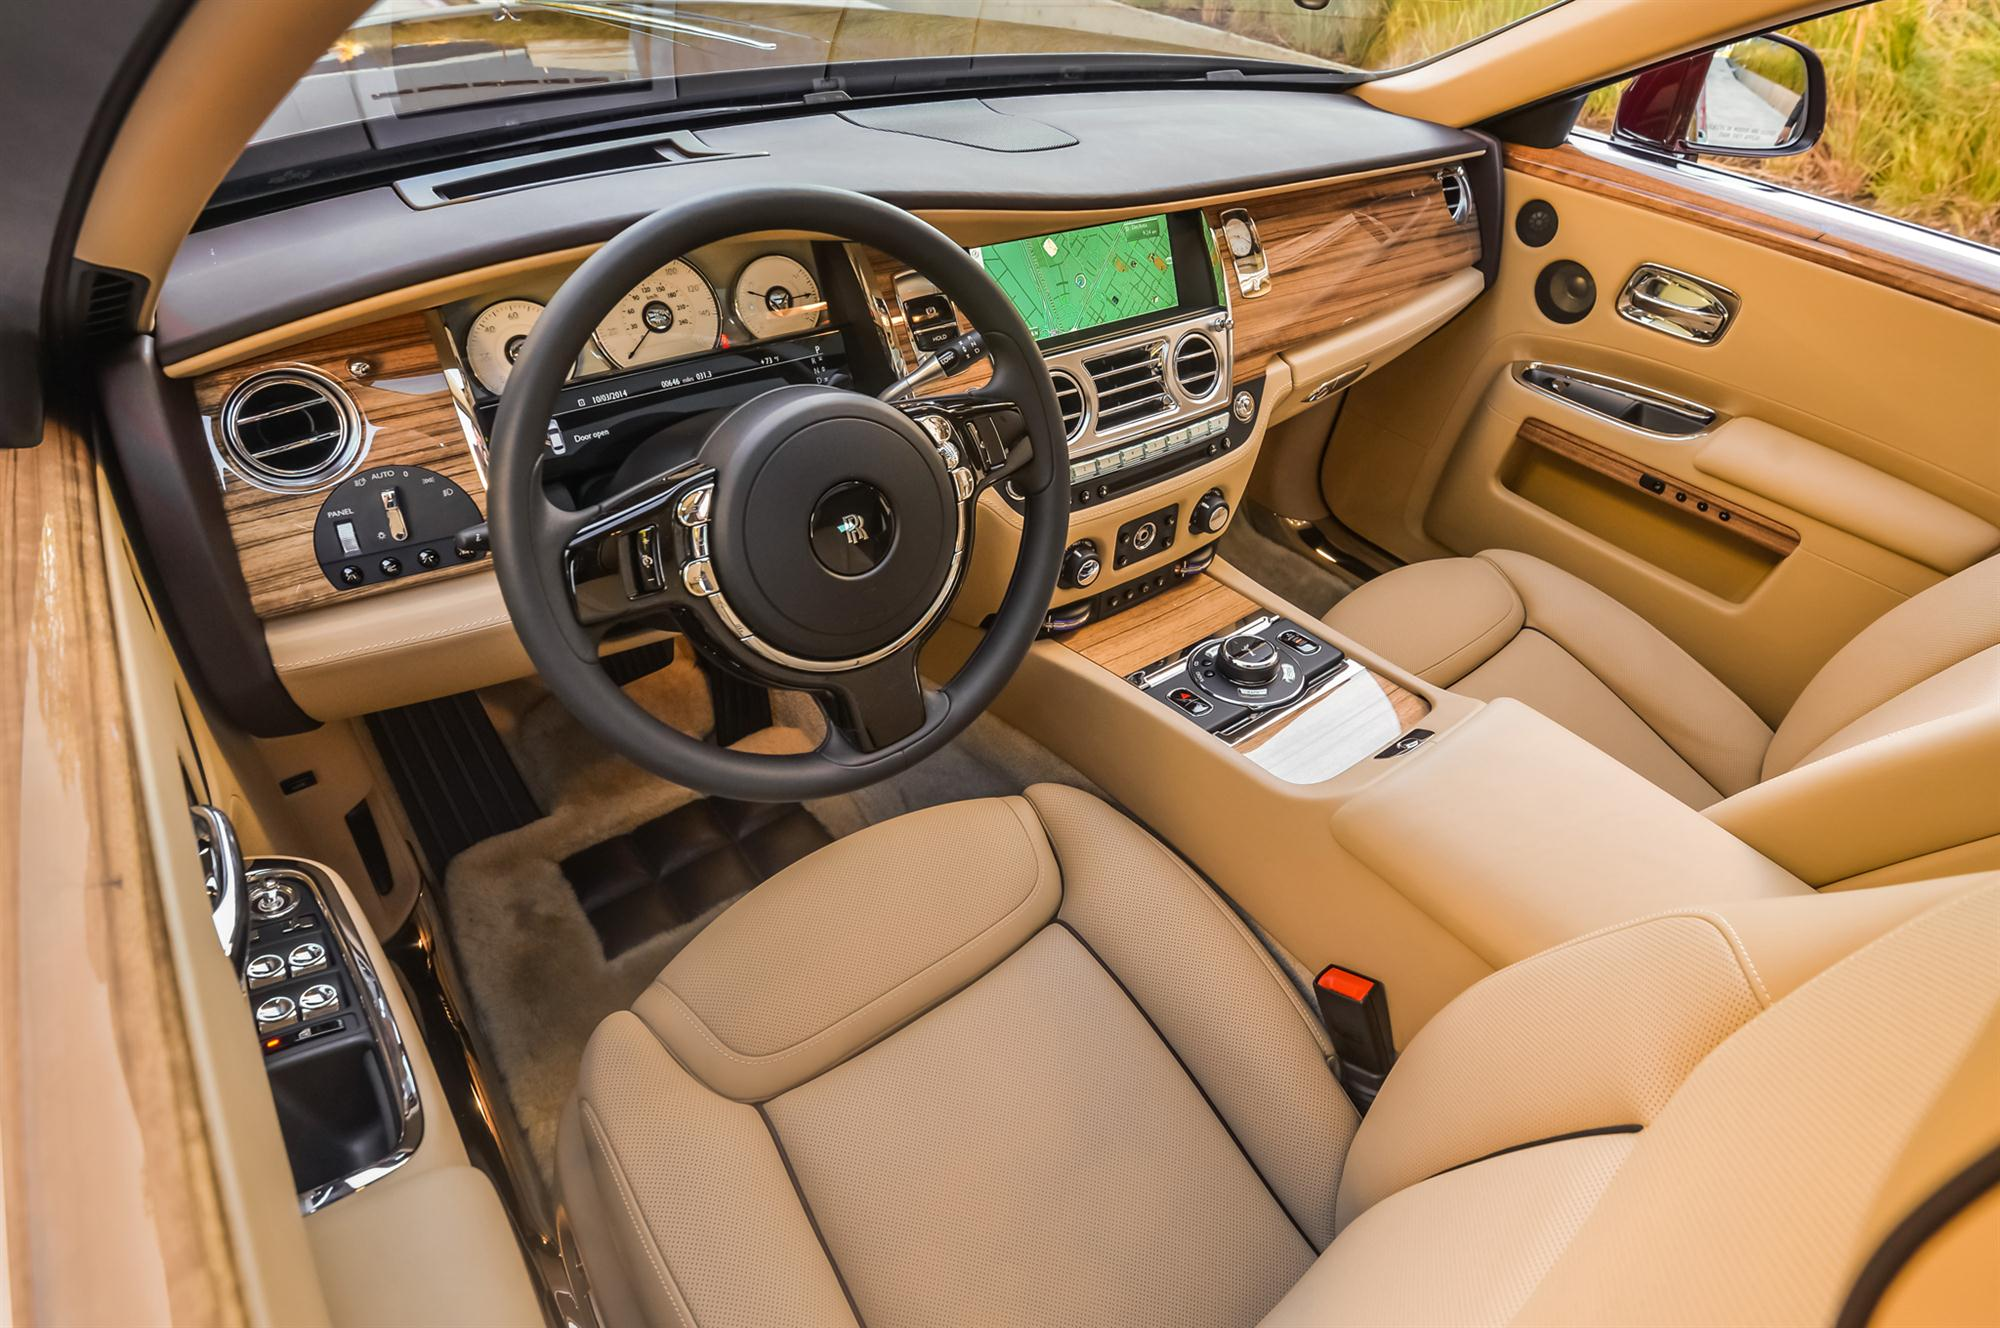 2018 Rolls Royce SUV interior photo